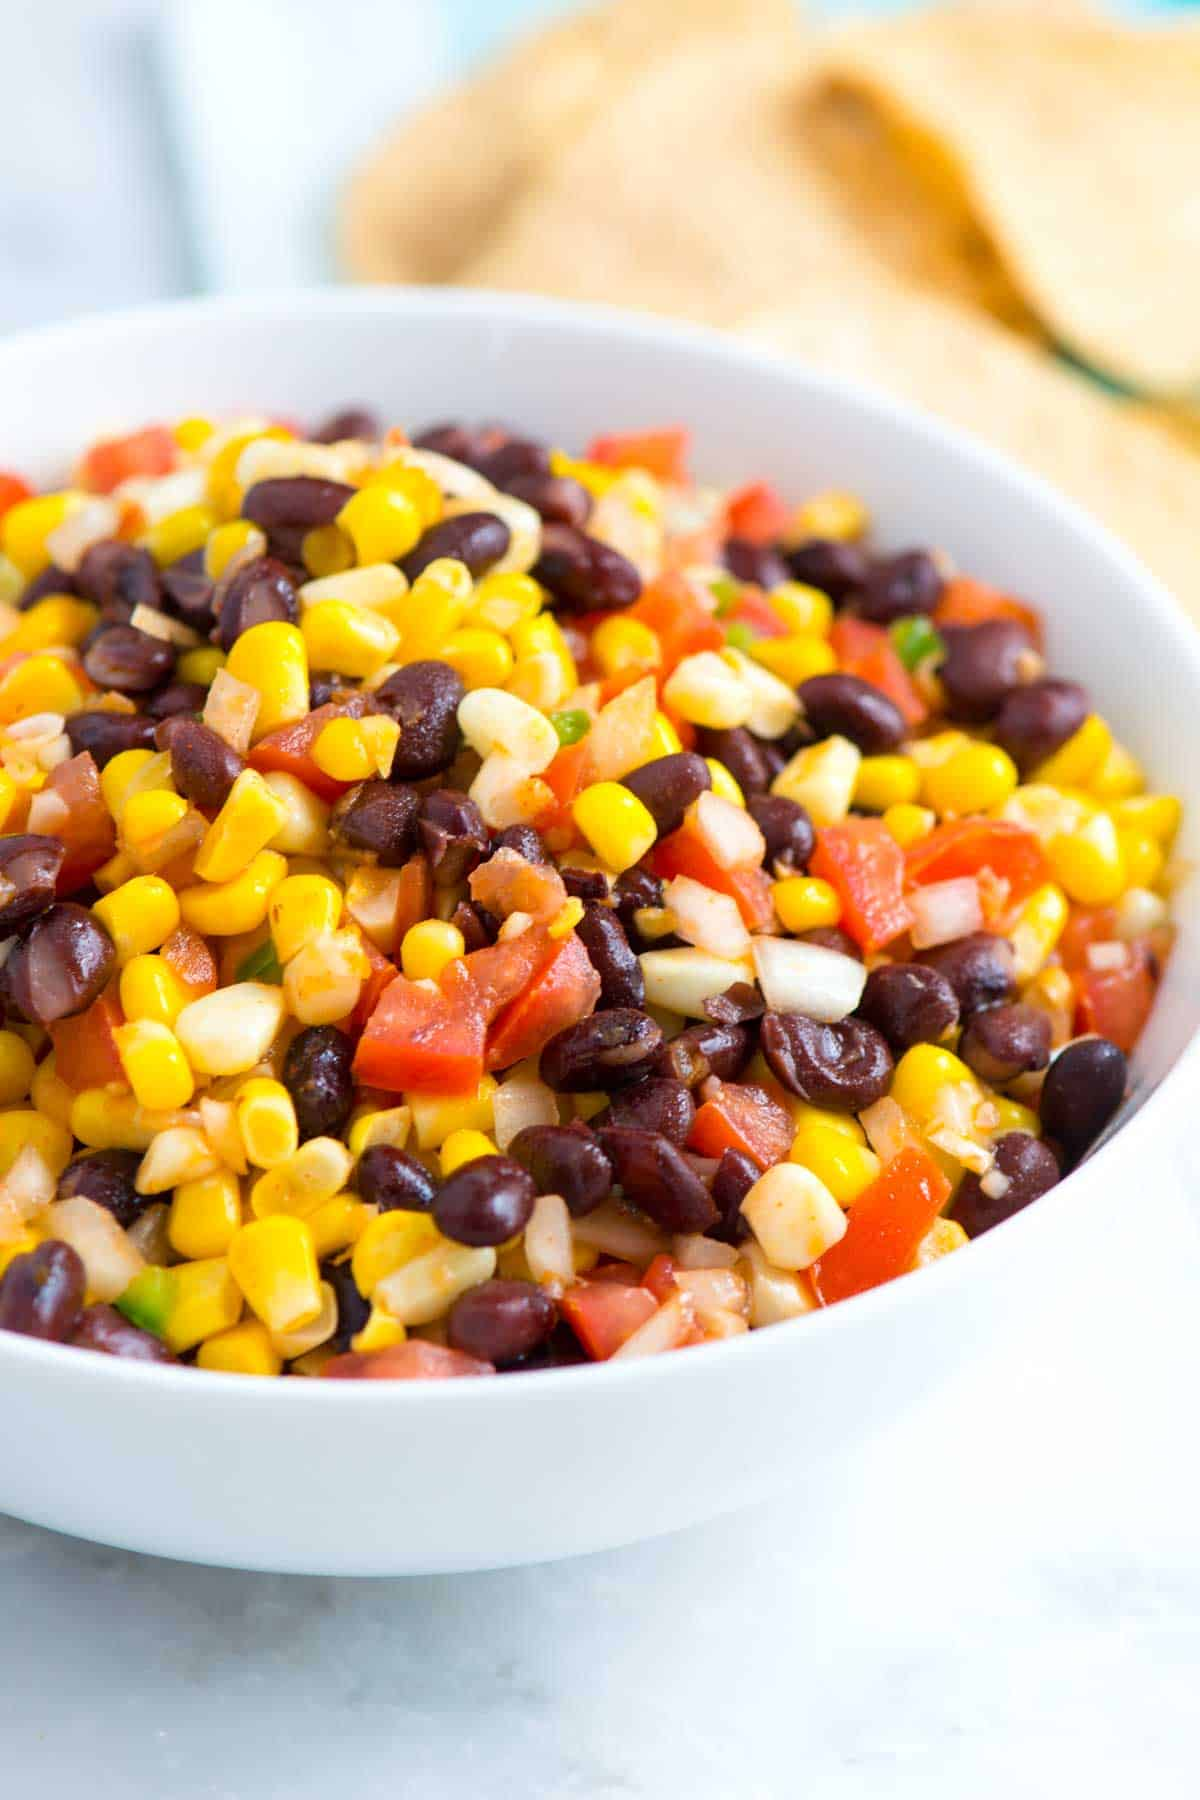 How to Make Black Bean and Corn Salad